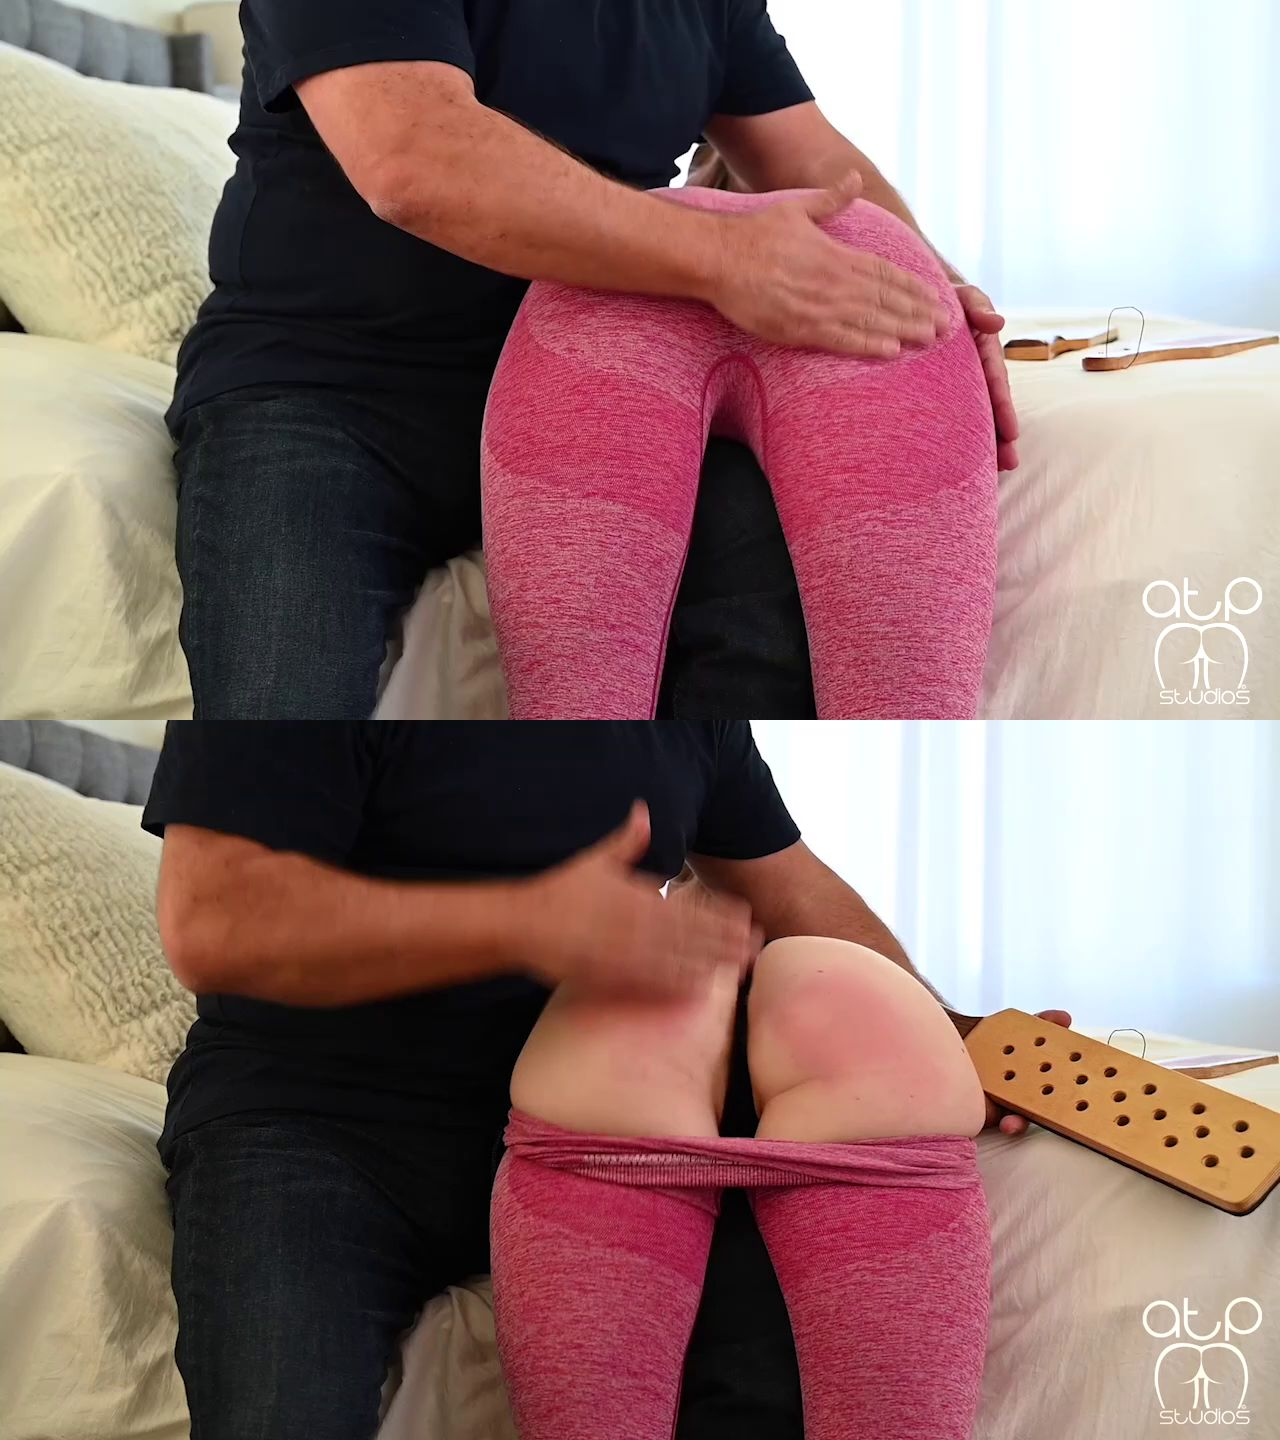 Assume The Position Studios – MP4/HD – The Master, Bubble Butt Becky – Daddy Paddles Bubble Butt Becky (Release date: Jun. 22, 2021)